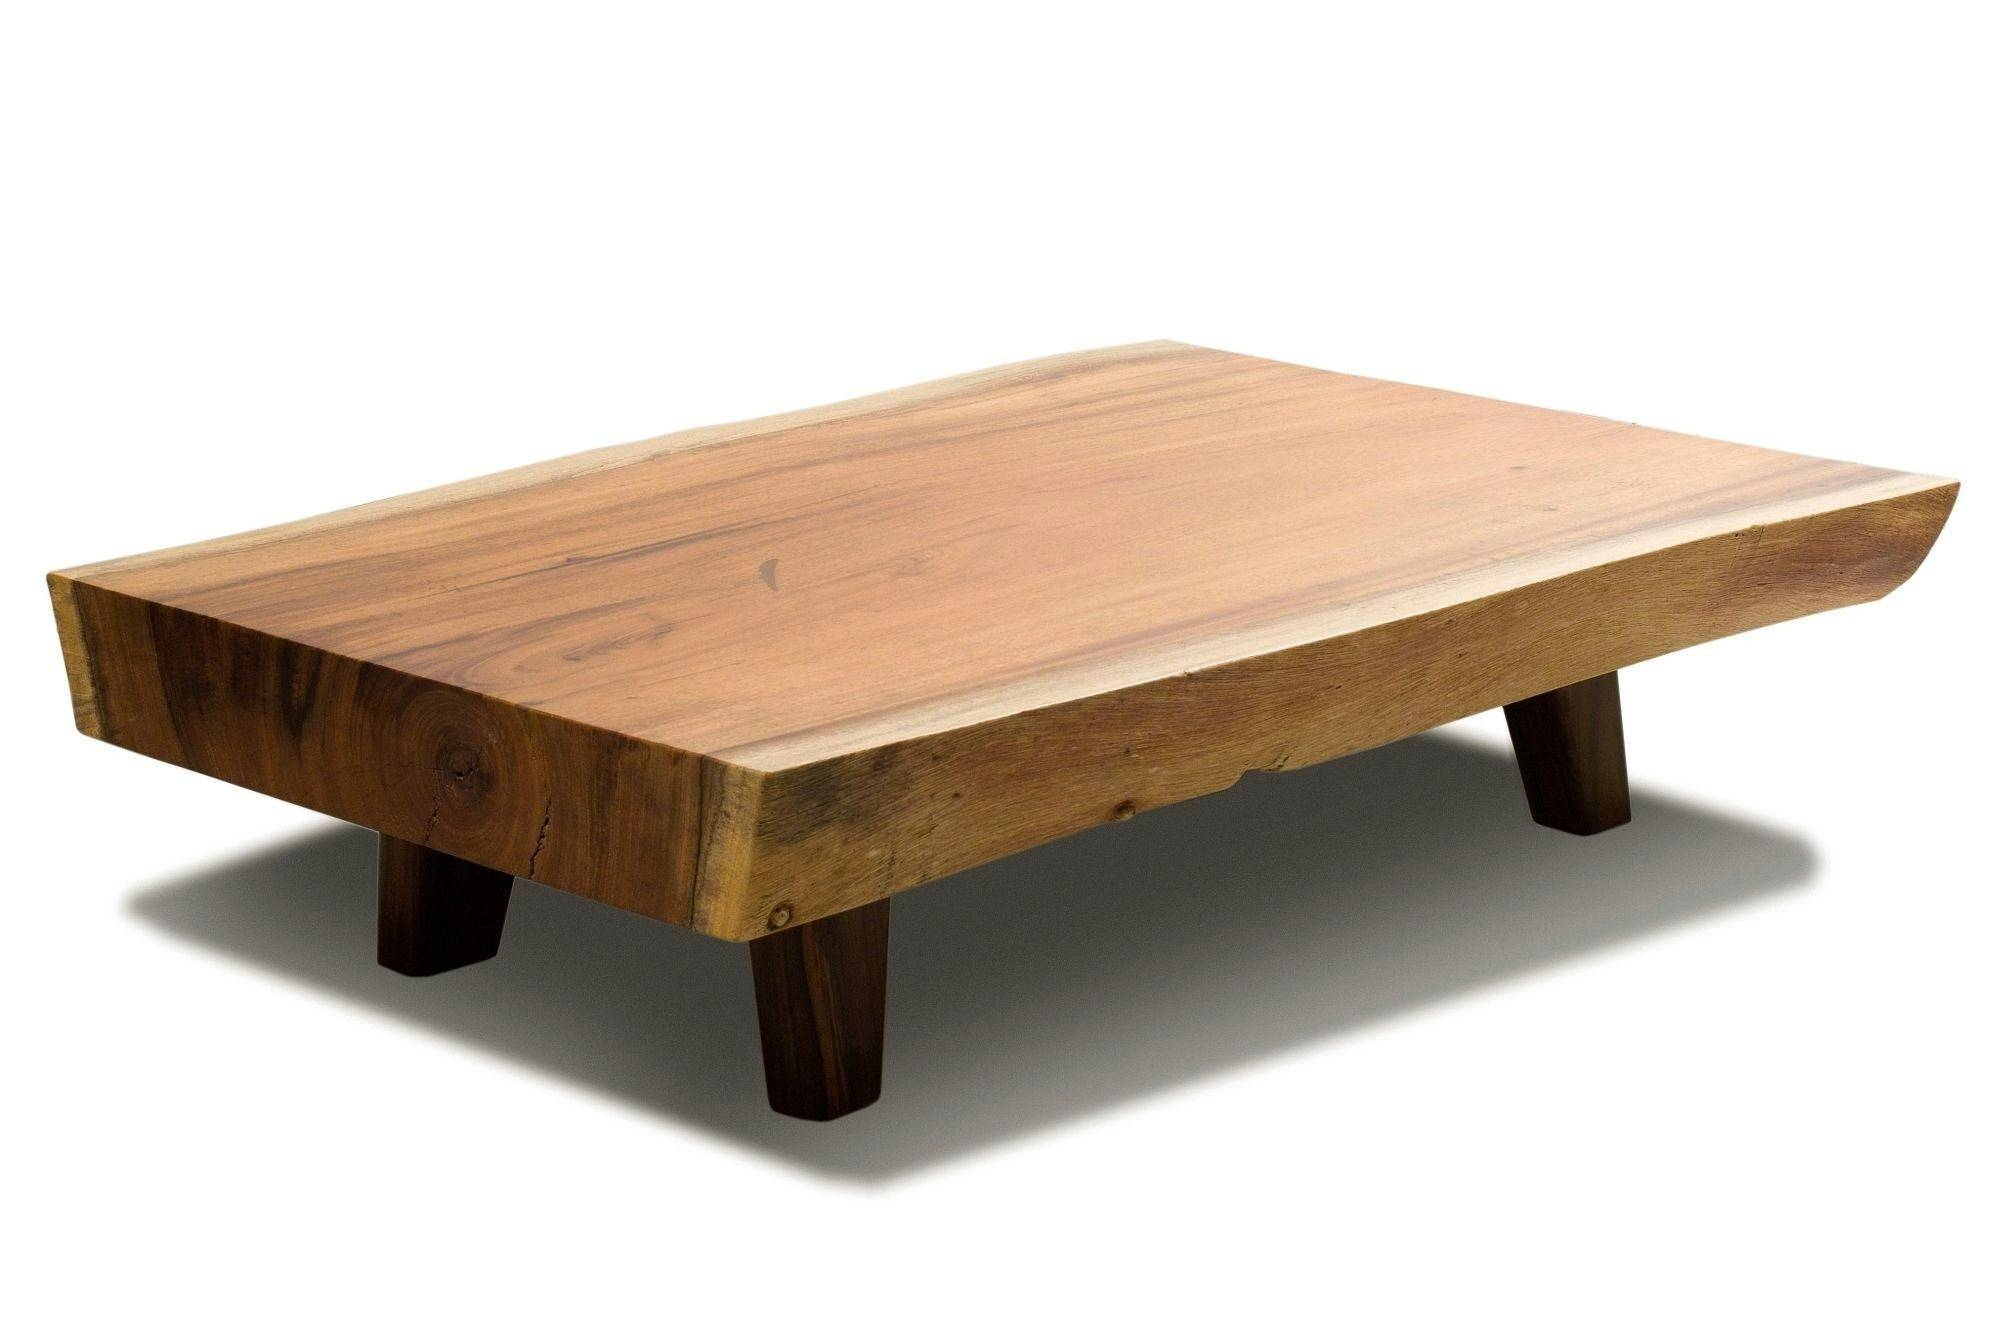 Low Wooden Coffee Table | Exterior Decorations Ideas inside Low Wooden Coffee Tables (Image 11 of 15)